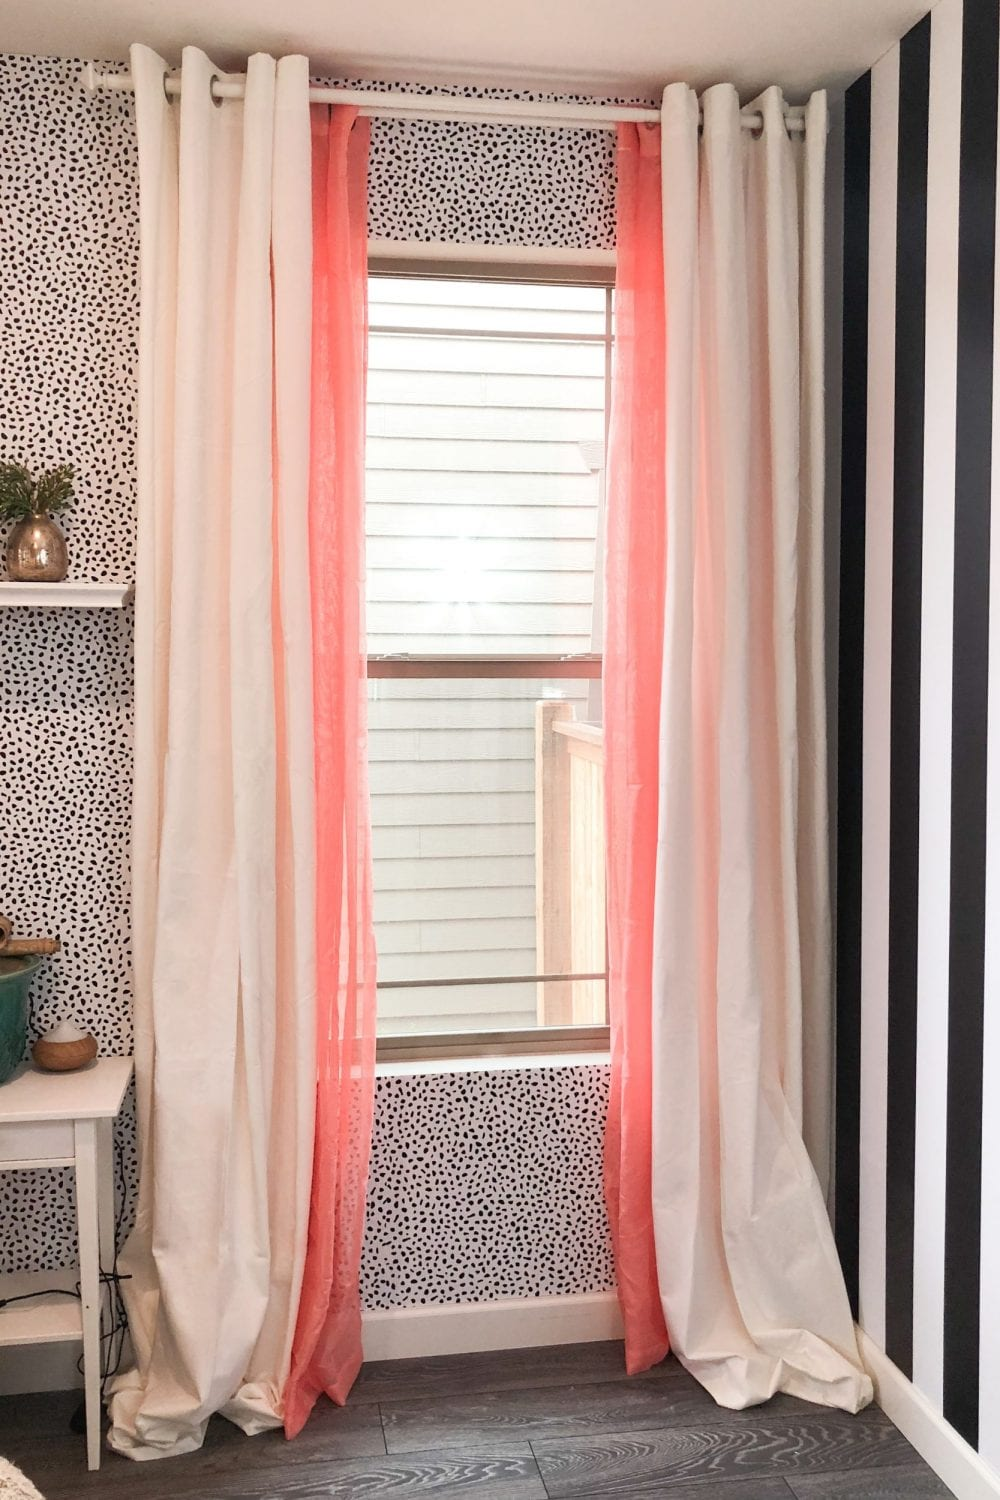 How to Style colored curtains, tip featured by top interior design blogger, Never Skip Brunch